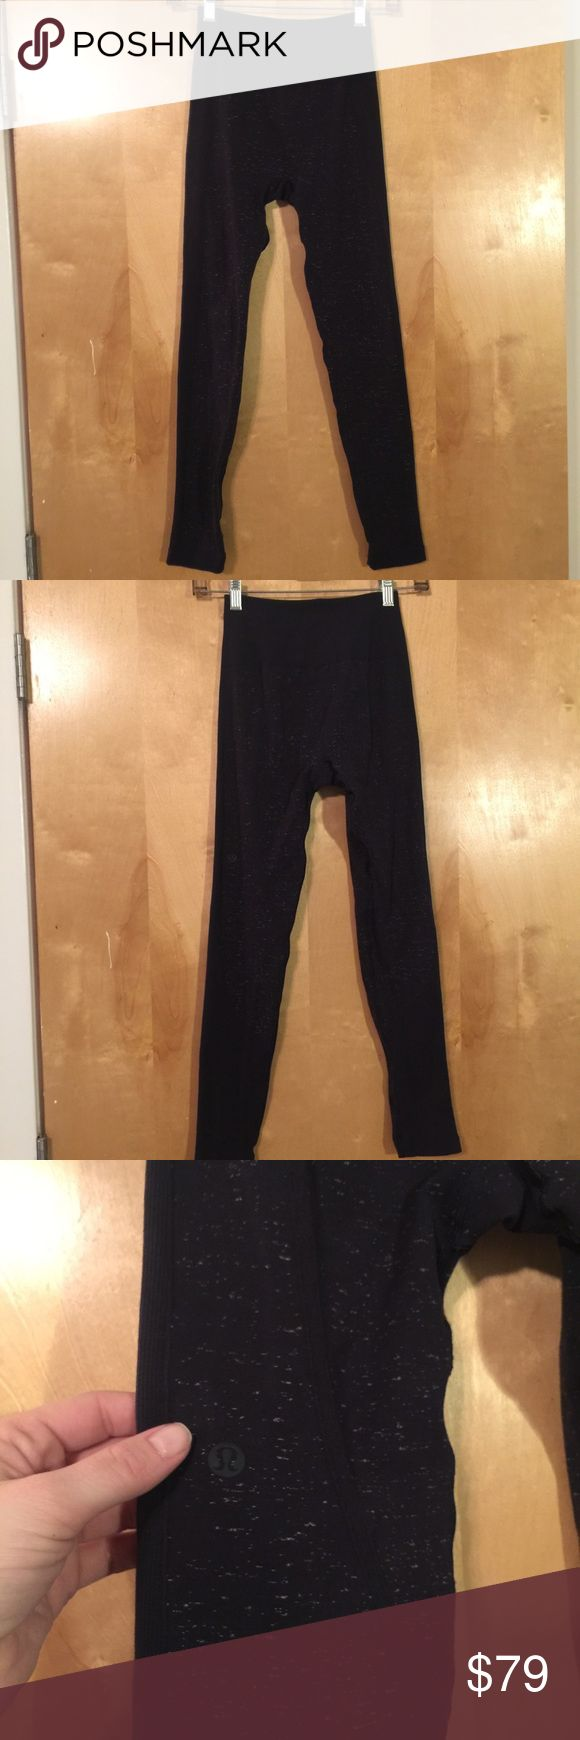 Lululemon Free to Flow 7/8 Tight Midnight blue with white speckled tights by Lululemon. Provide hugged/second skin sensation and only worn once/washed (hung to dry) once. Excellent like new  condition. **stock photos are black with speck but actual tights are dark blue with speck*** lululemon athletica Pants Leggings